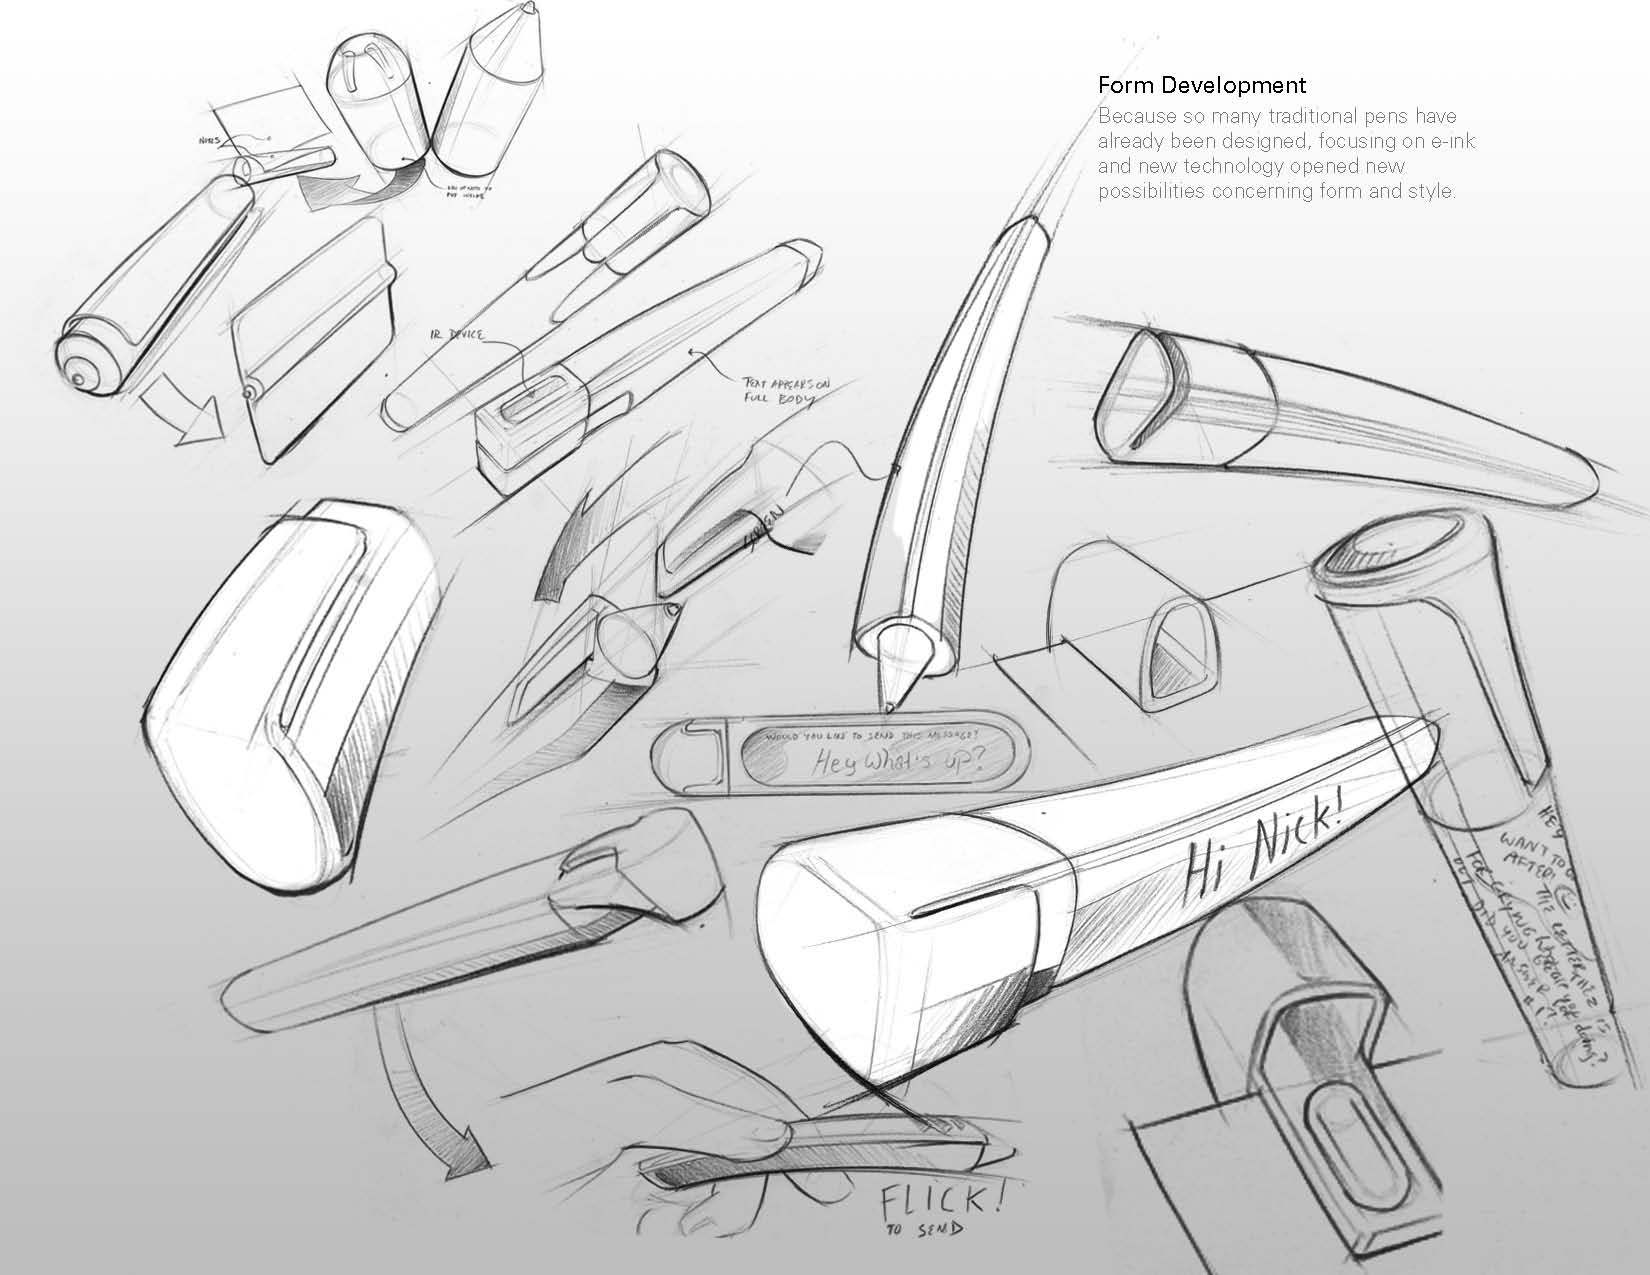 Object Sketching: Ideation/Illustration